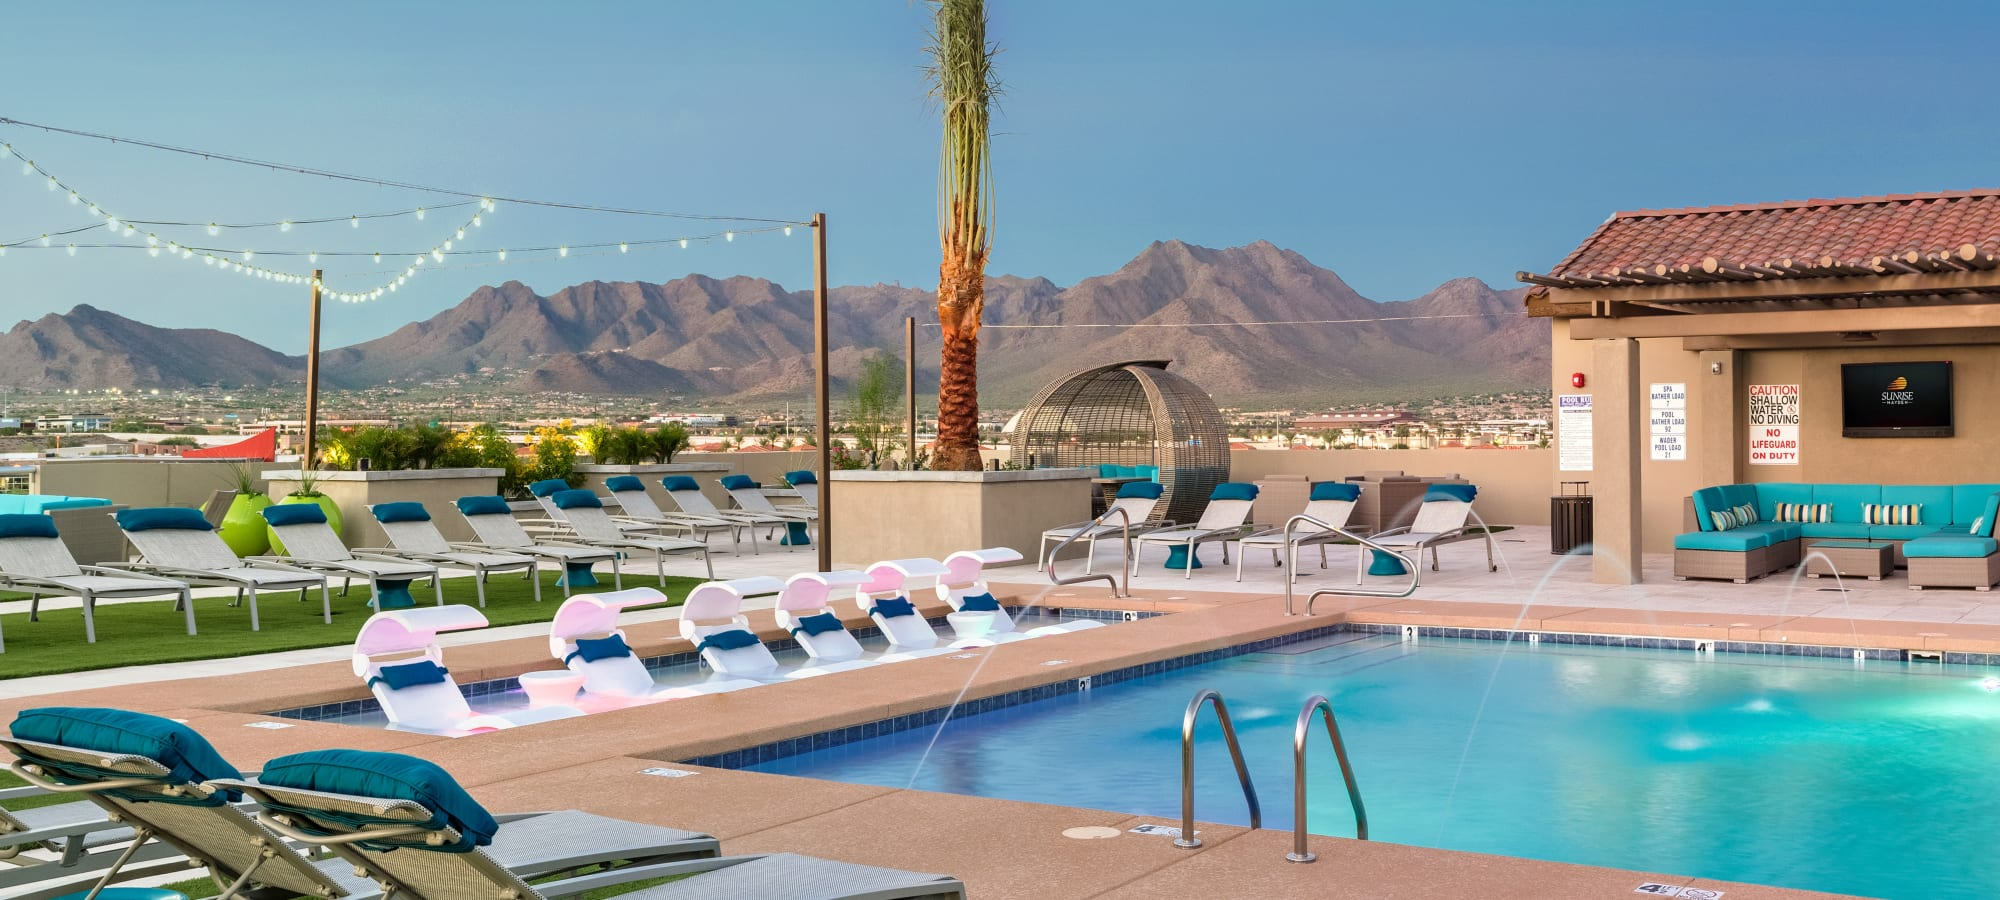 Resort-style swimming pool area with the McDowell Mountain range in the background at The Core Scottsdale in Scottsdale, Arizona